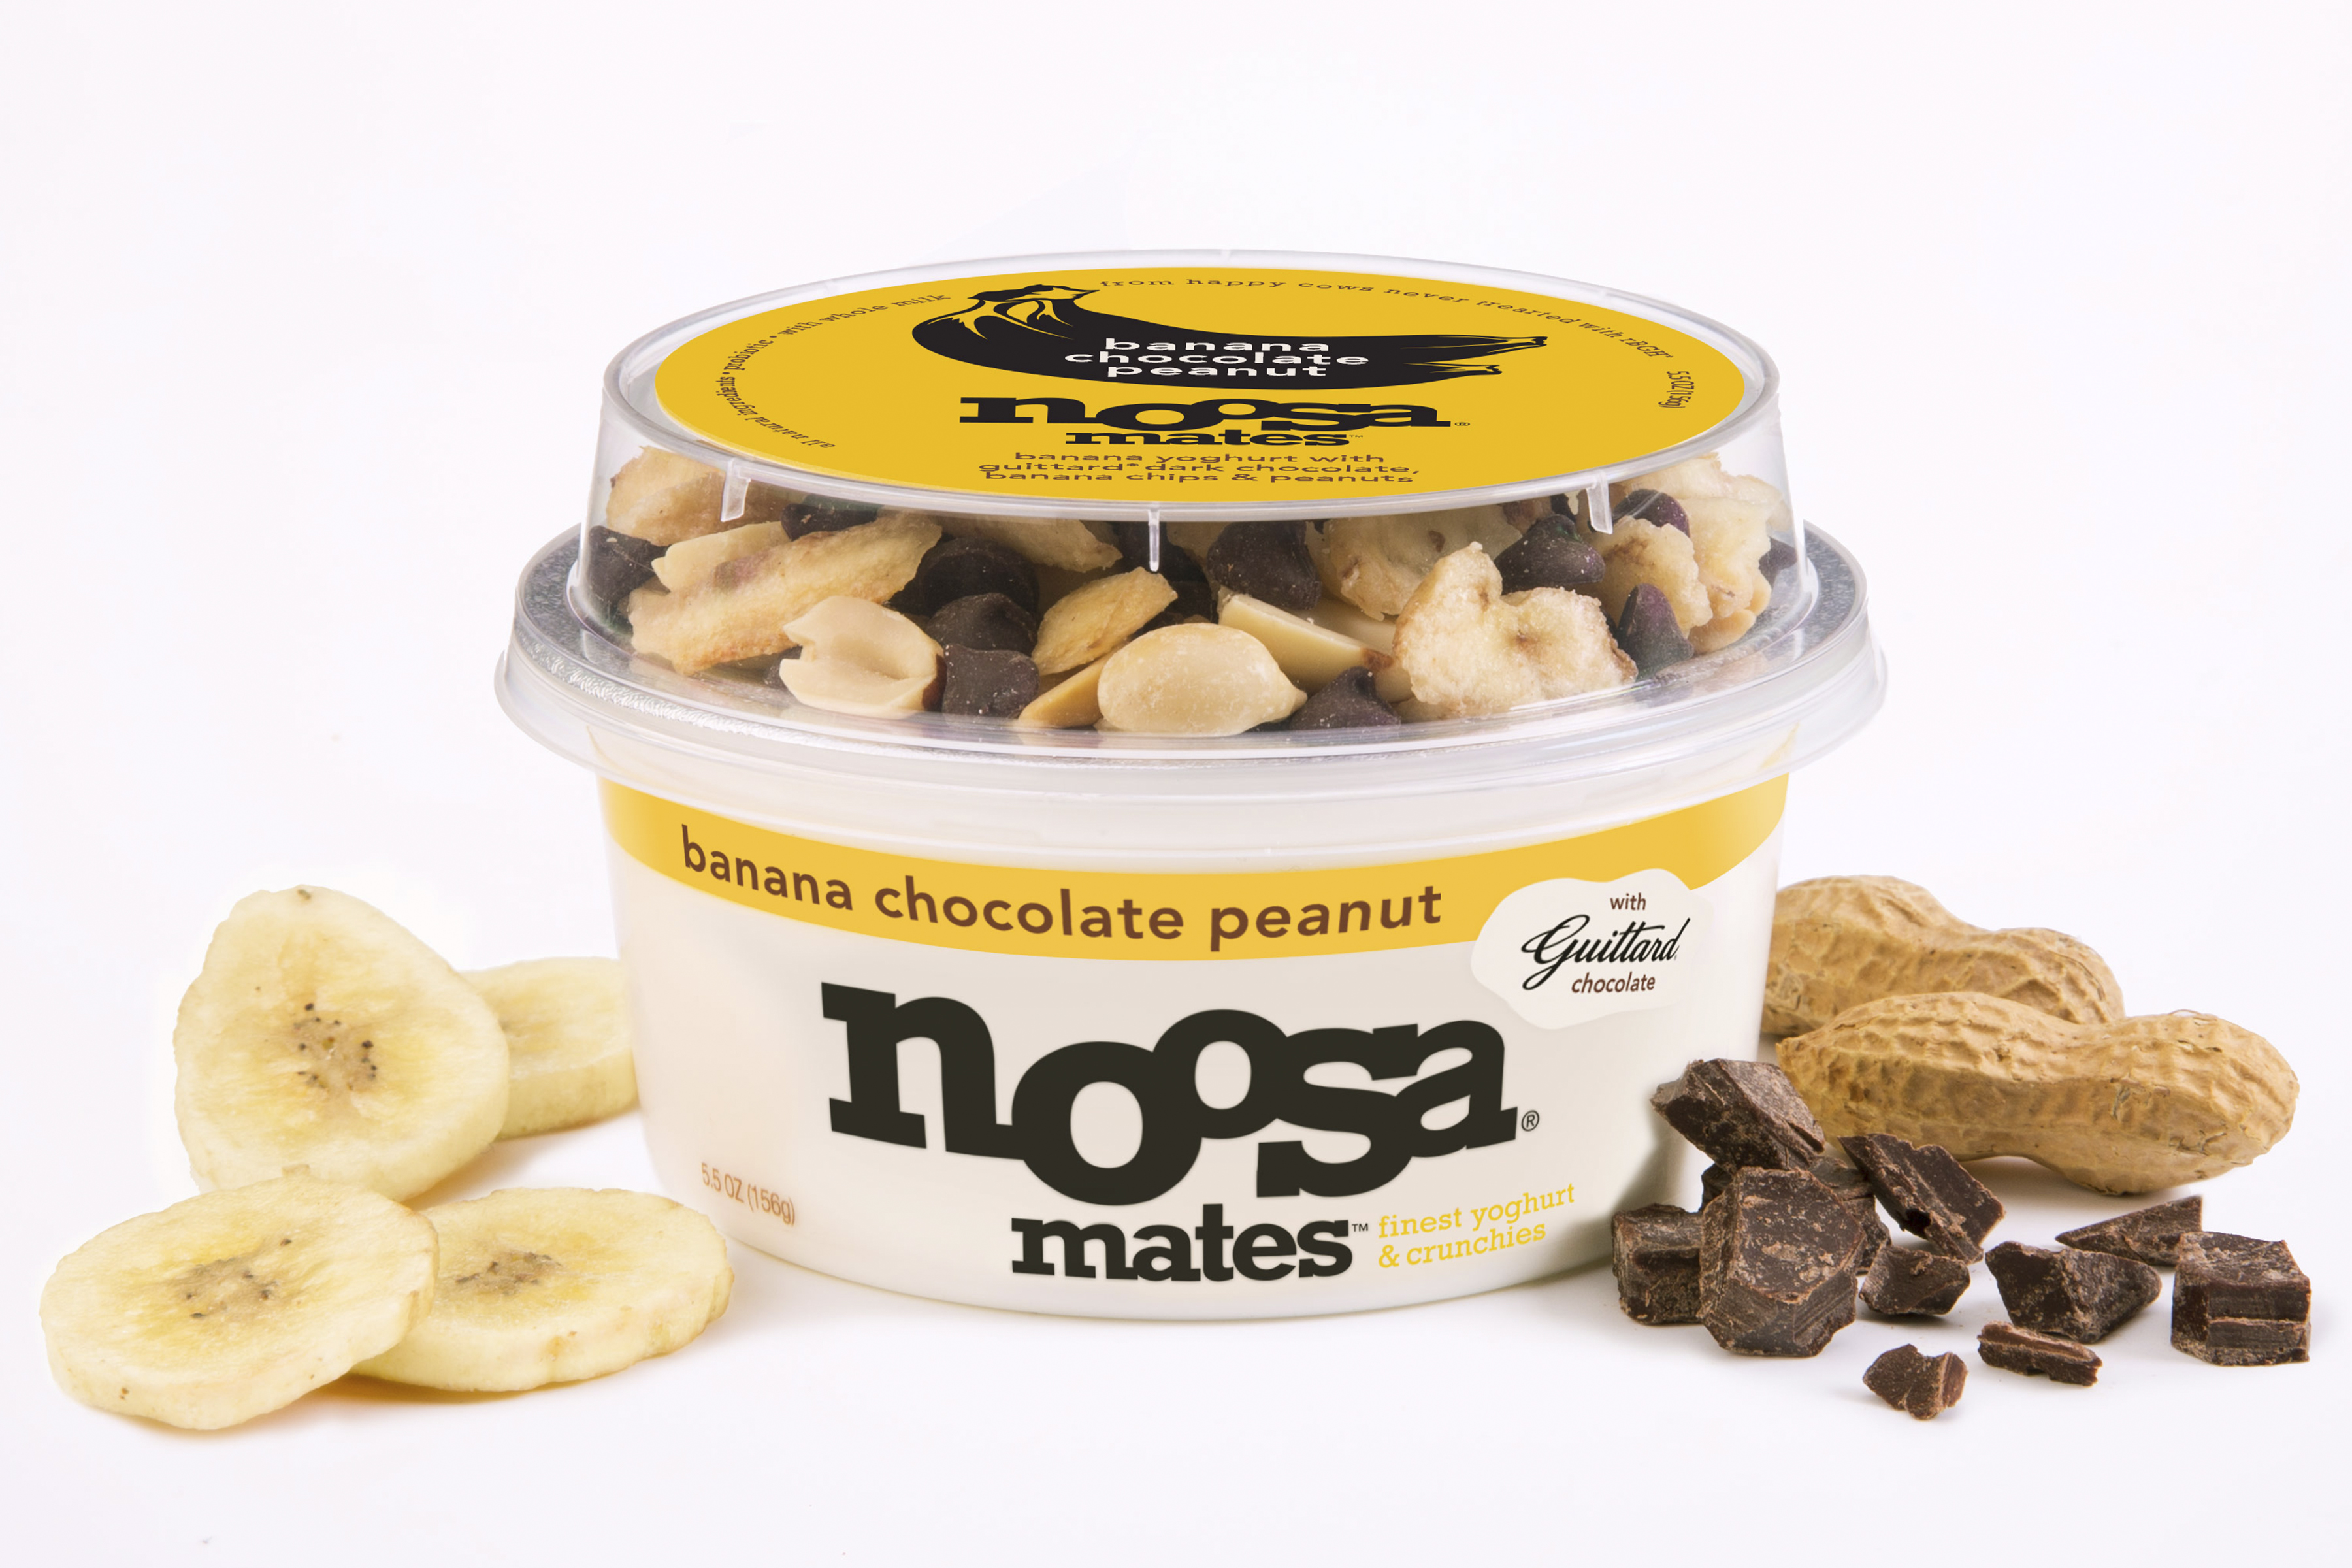 Noosa Yoghurt is aiming at the newer trend of adding mix-in sugary snacks to plain yogurt.